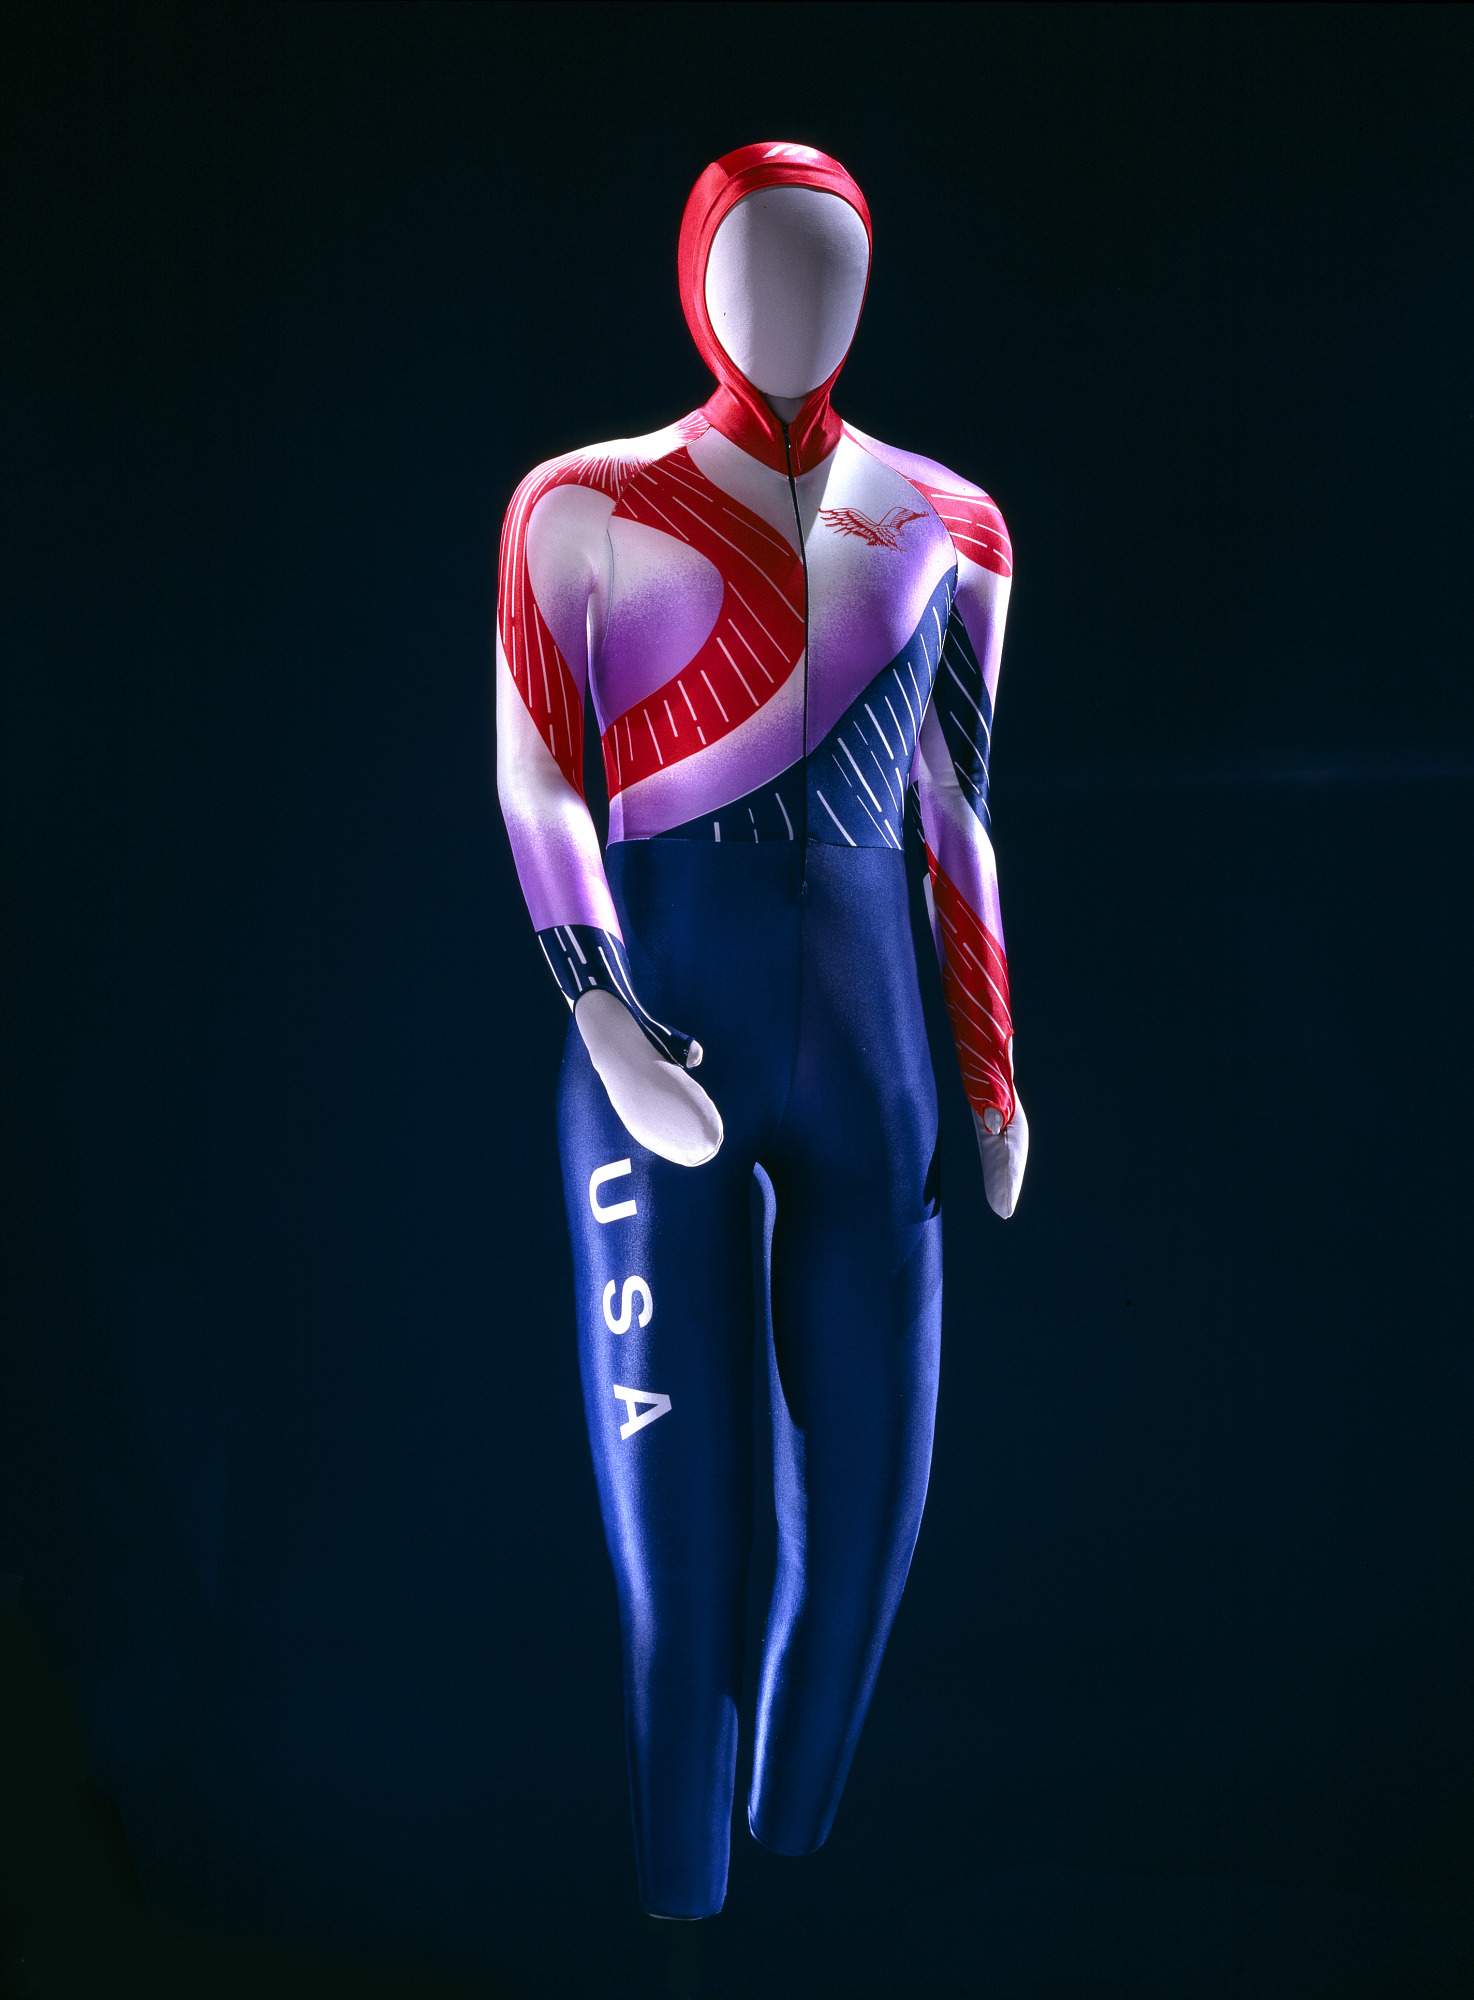 images for Olympic Skating Skin Suit, worn by Bonnie Blair